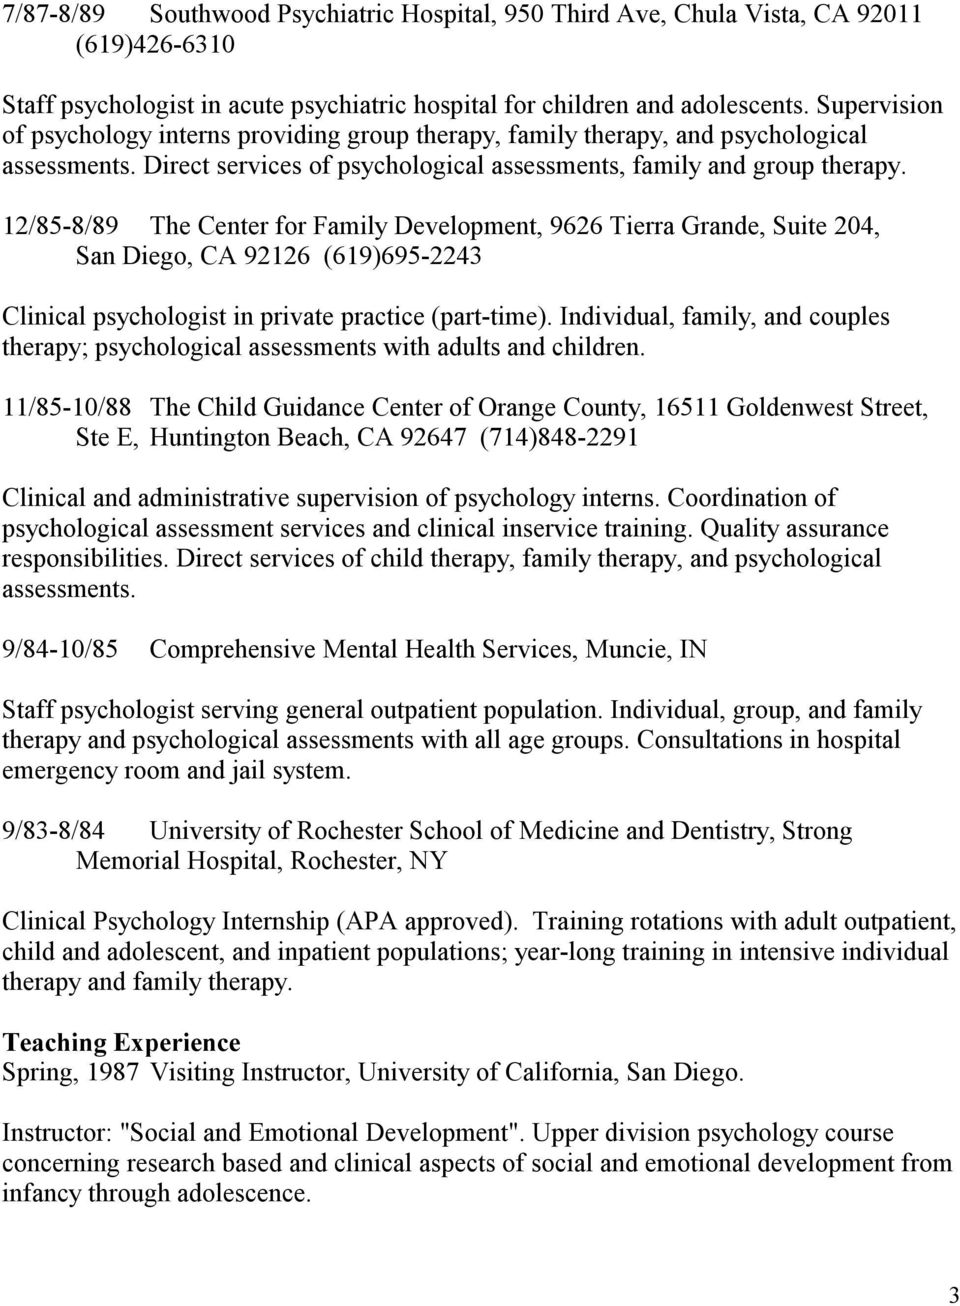 12/85-8/89 The Center for Family Development, 9626 Tierra Grande, Suite 204, San Diego, CA 92126 (619)695-2243 Clinical psychologist in private practice (part-time).